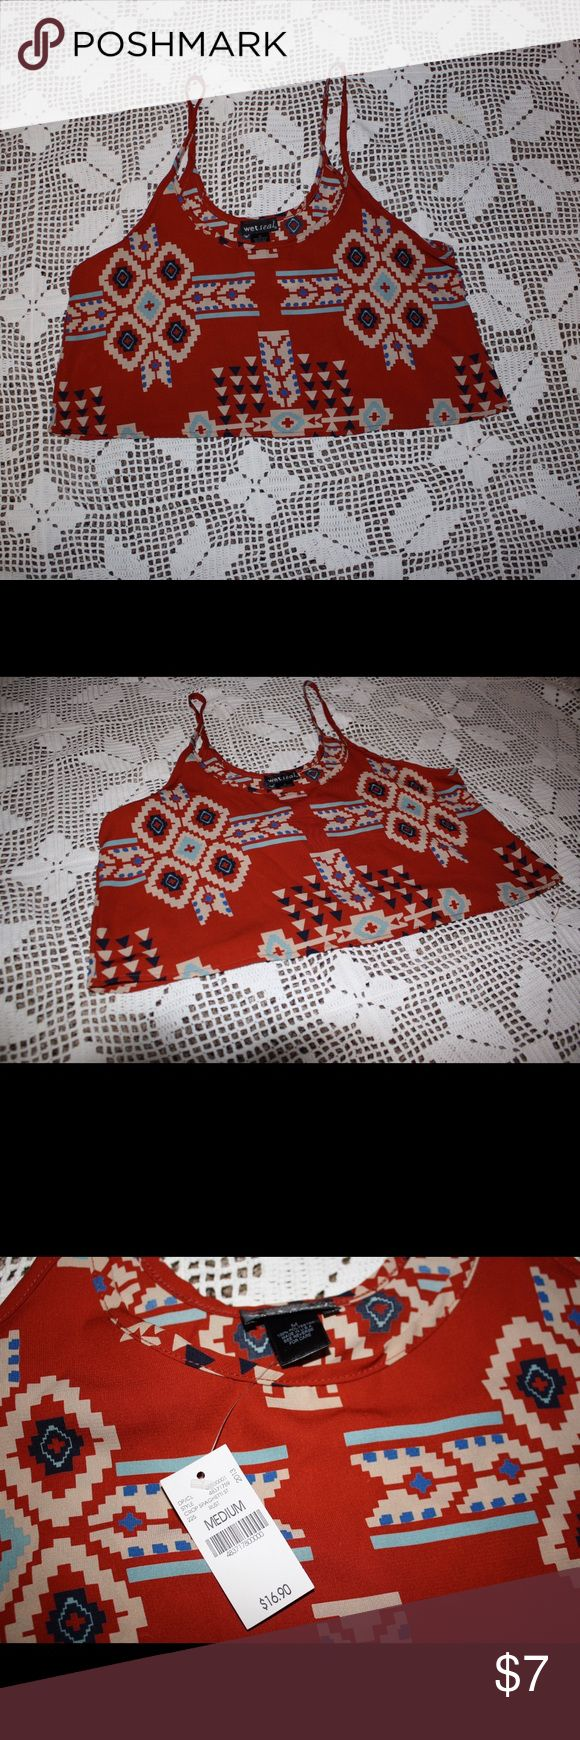 Aztec Crop Top Aztec crop top! Cute with high waisted shorts! Never worn Tops Crop Tops